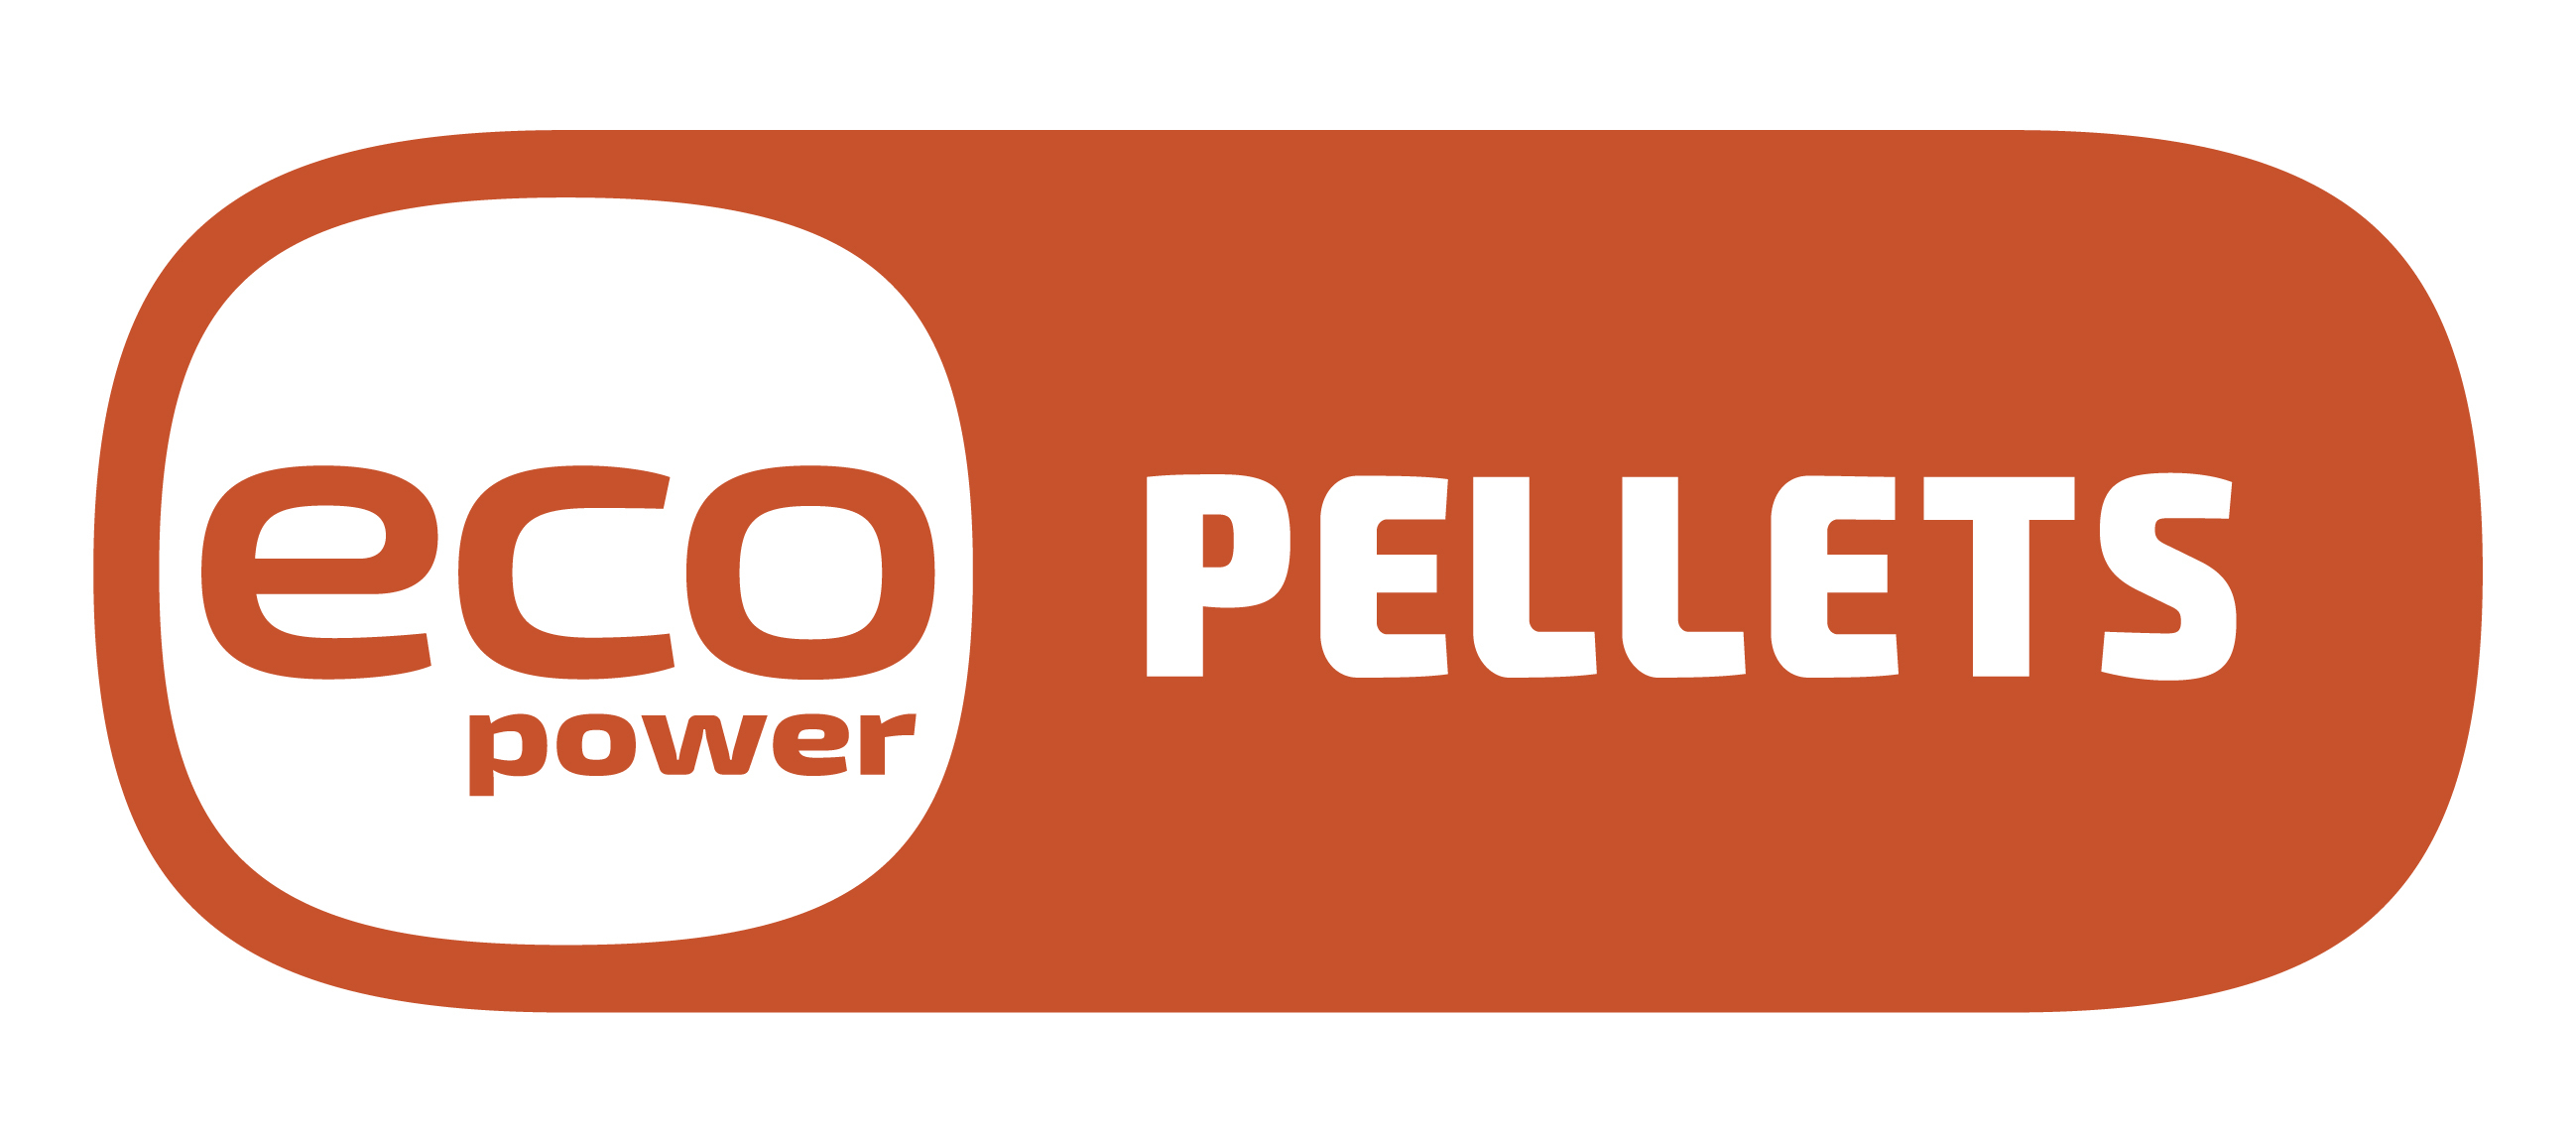 Ecopower pellets